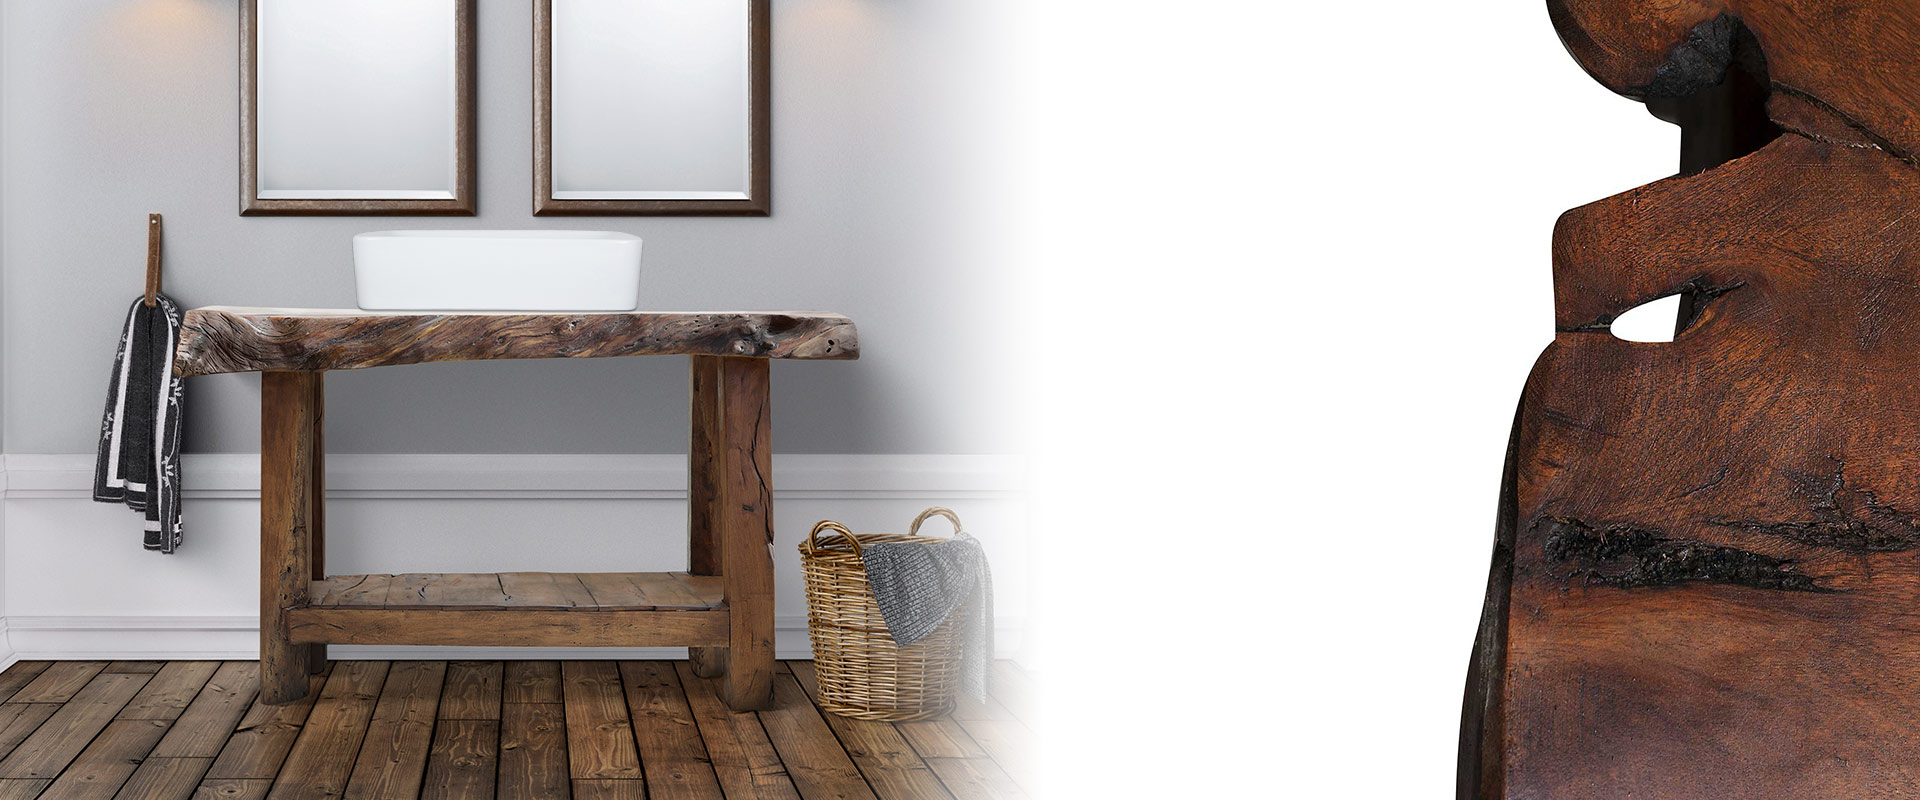 Buy Rustic Handcrafted Home Decor Products In Texas